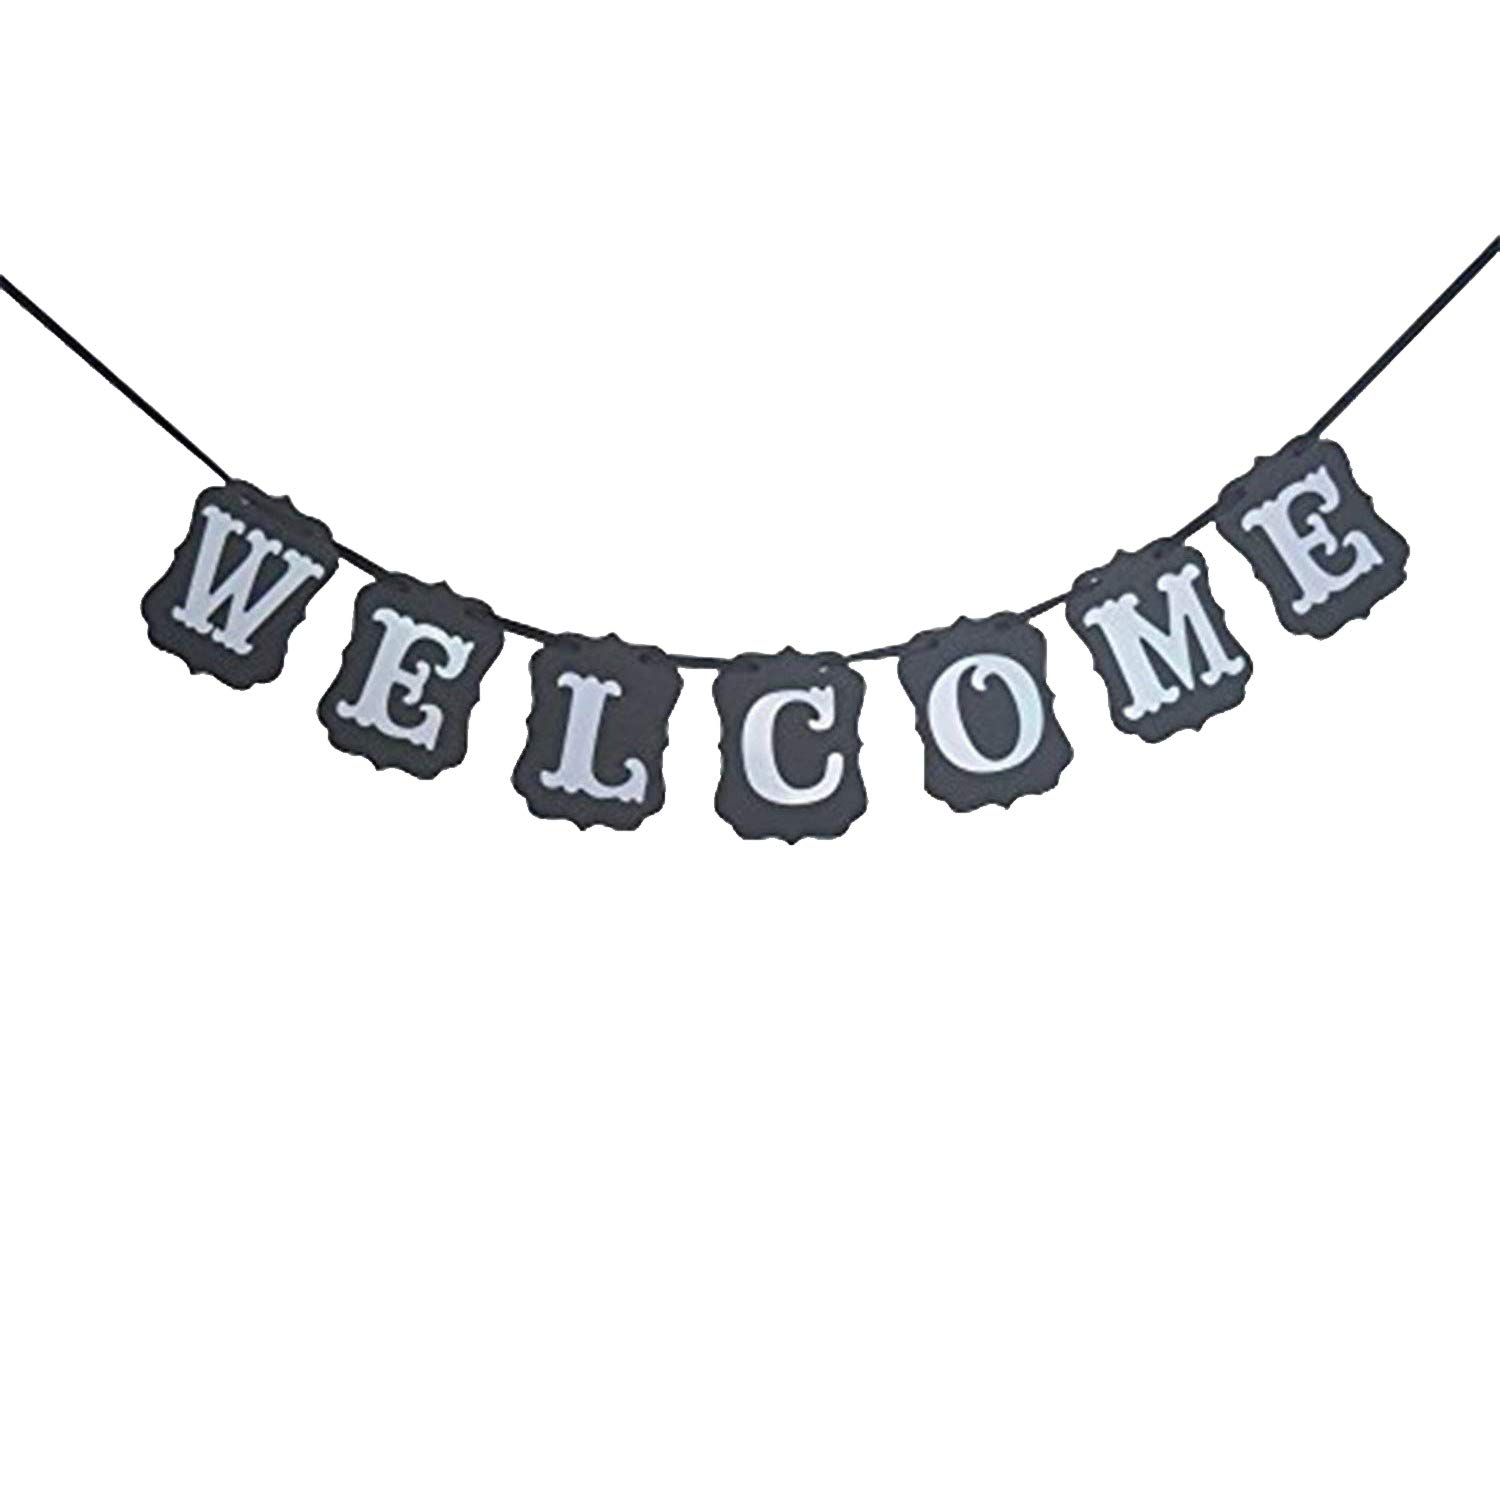 Bridal Shower Large Graduation Baby Shower Classroom Mantle Wedding Fireplace Reunion Black Vintage Welcome Banner Sign Alumni Homecoming Bachelorette Party Great for Back to School